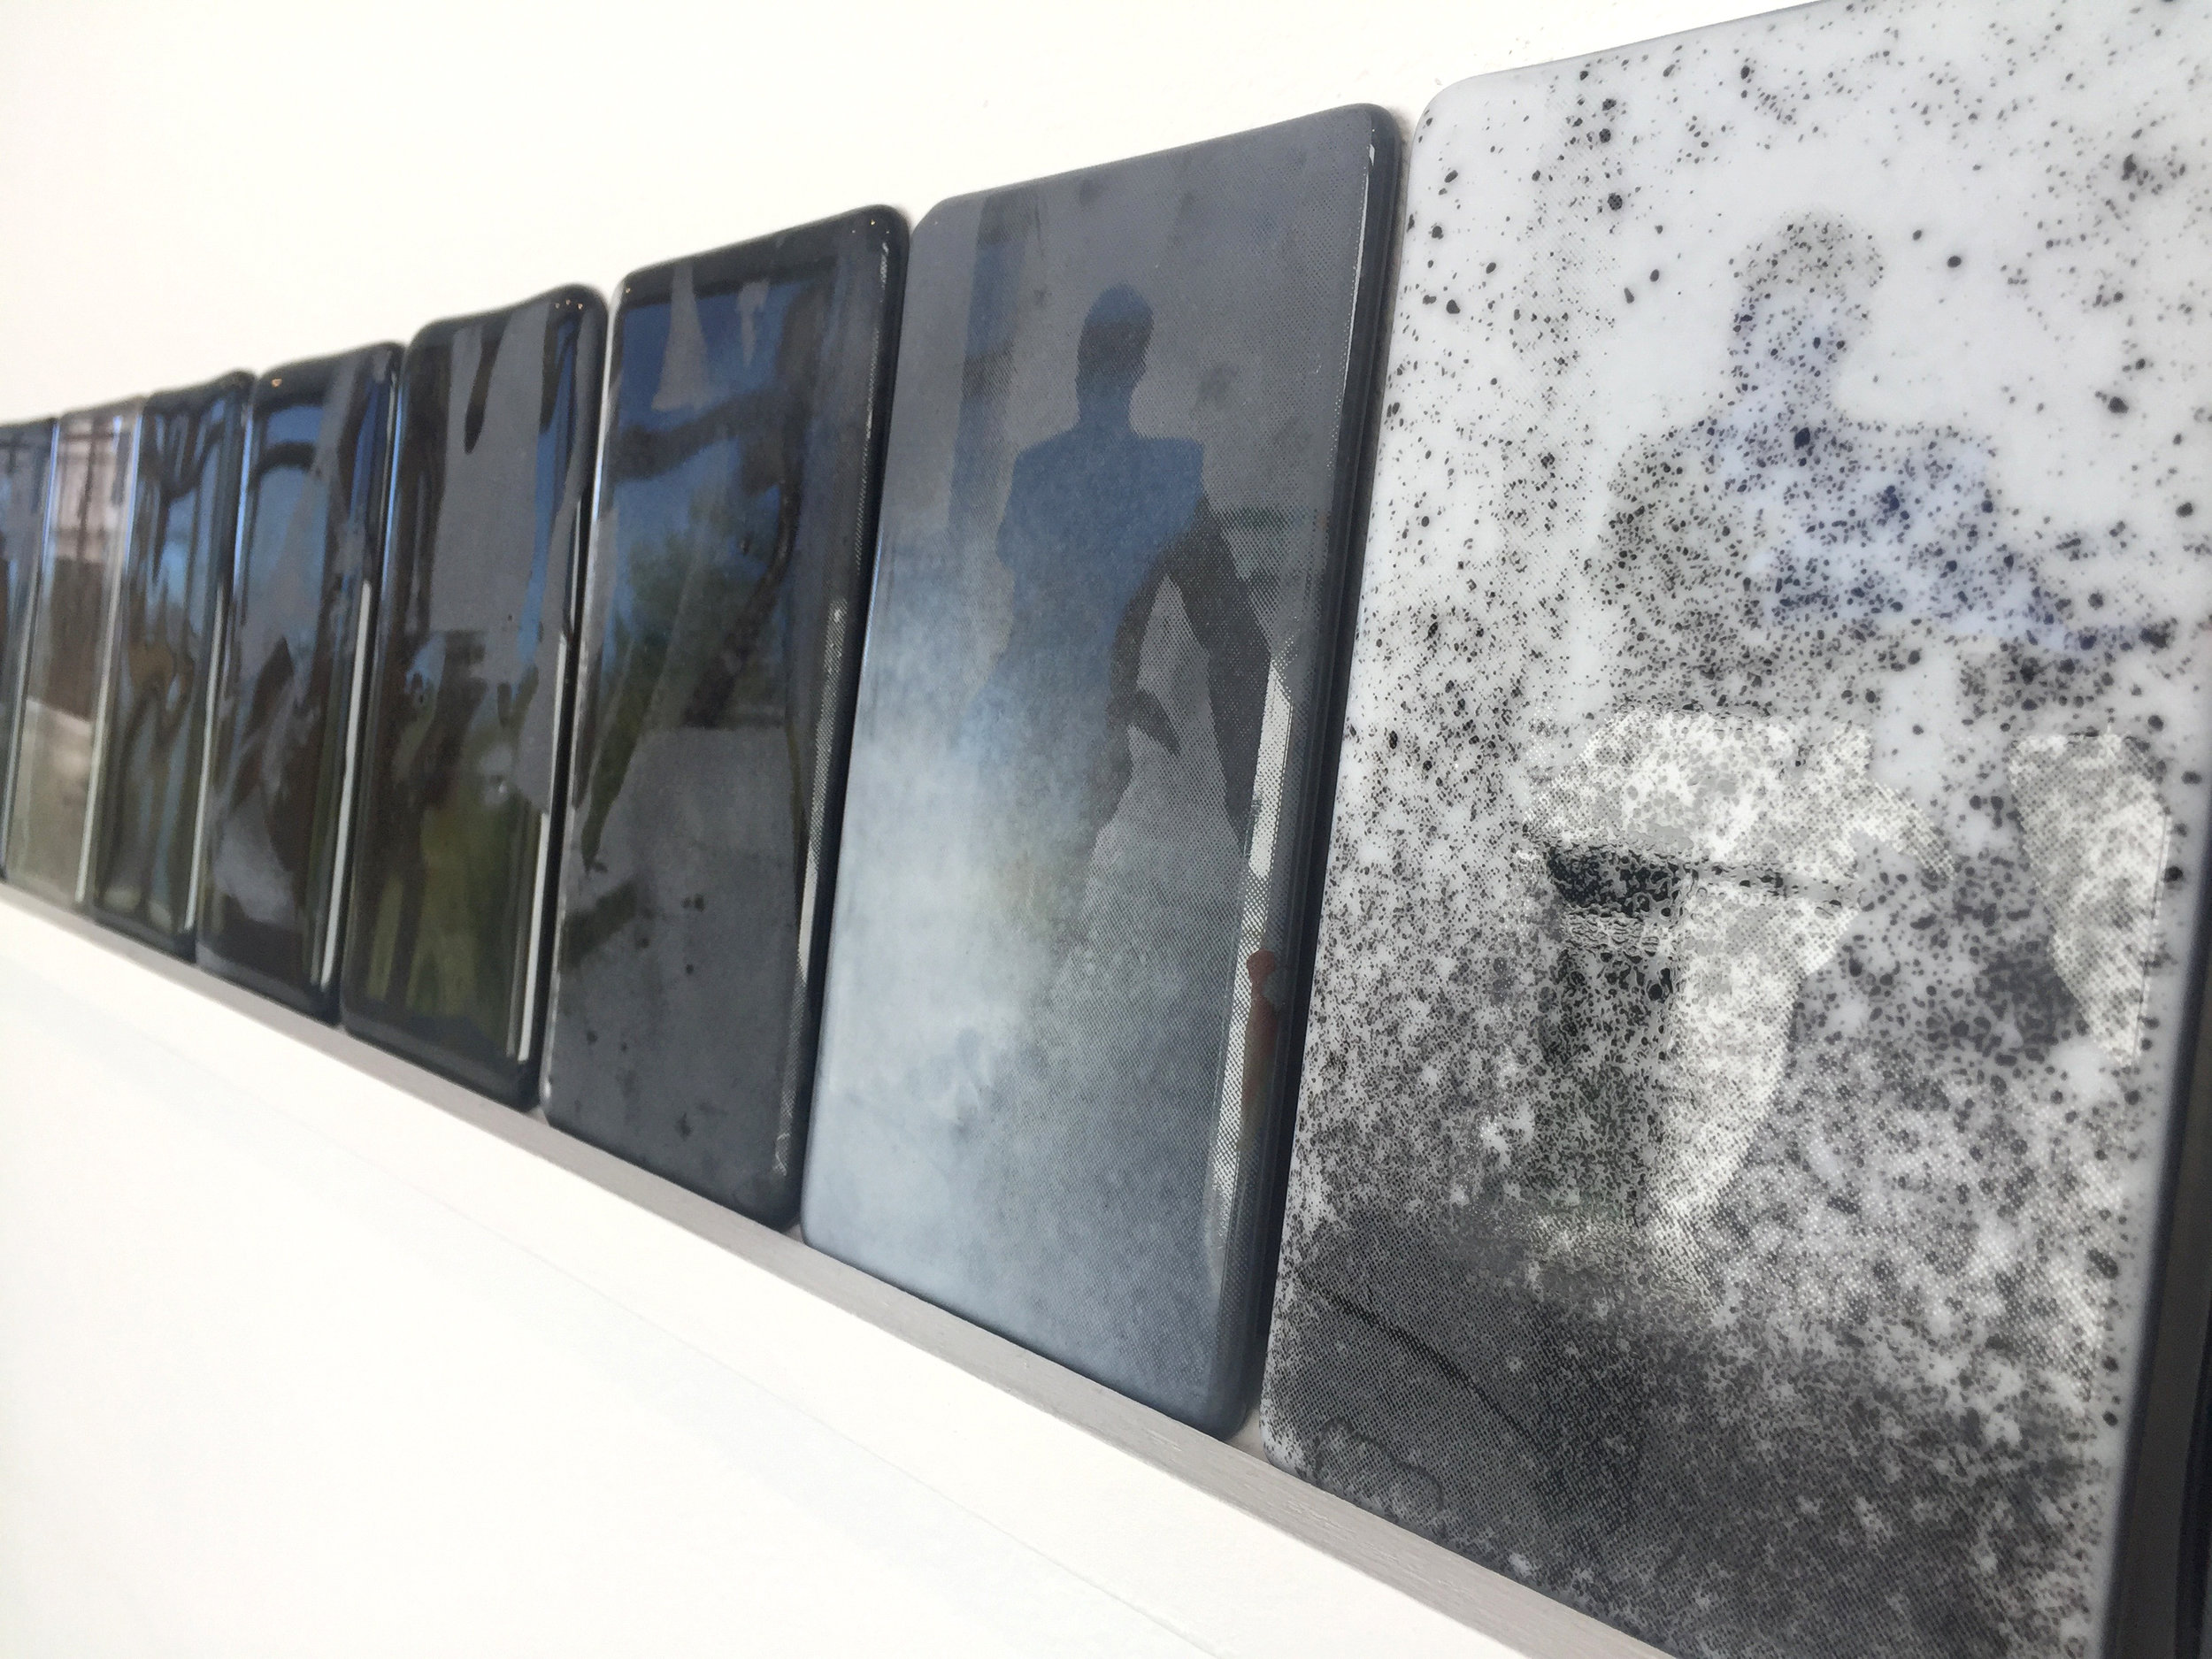 Runners Up, 2014‒16 (detail)